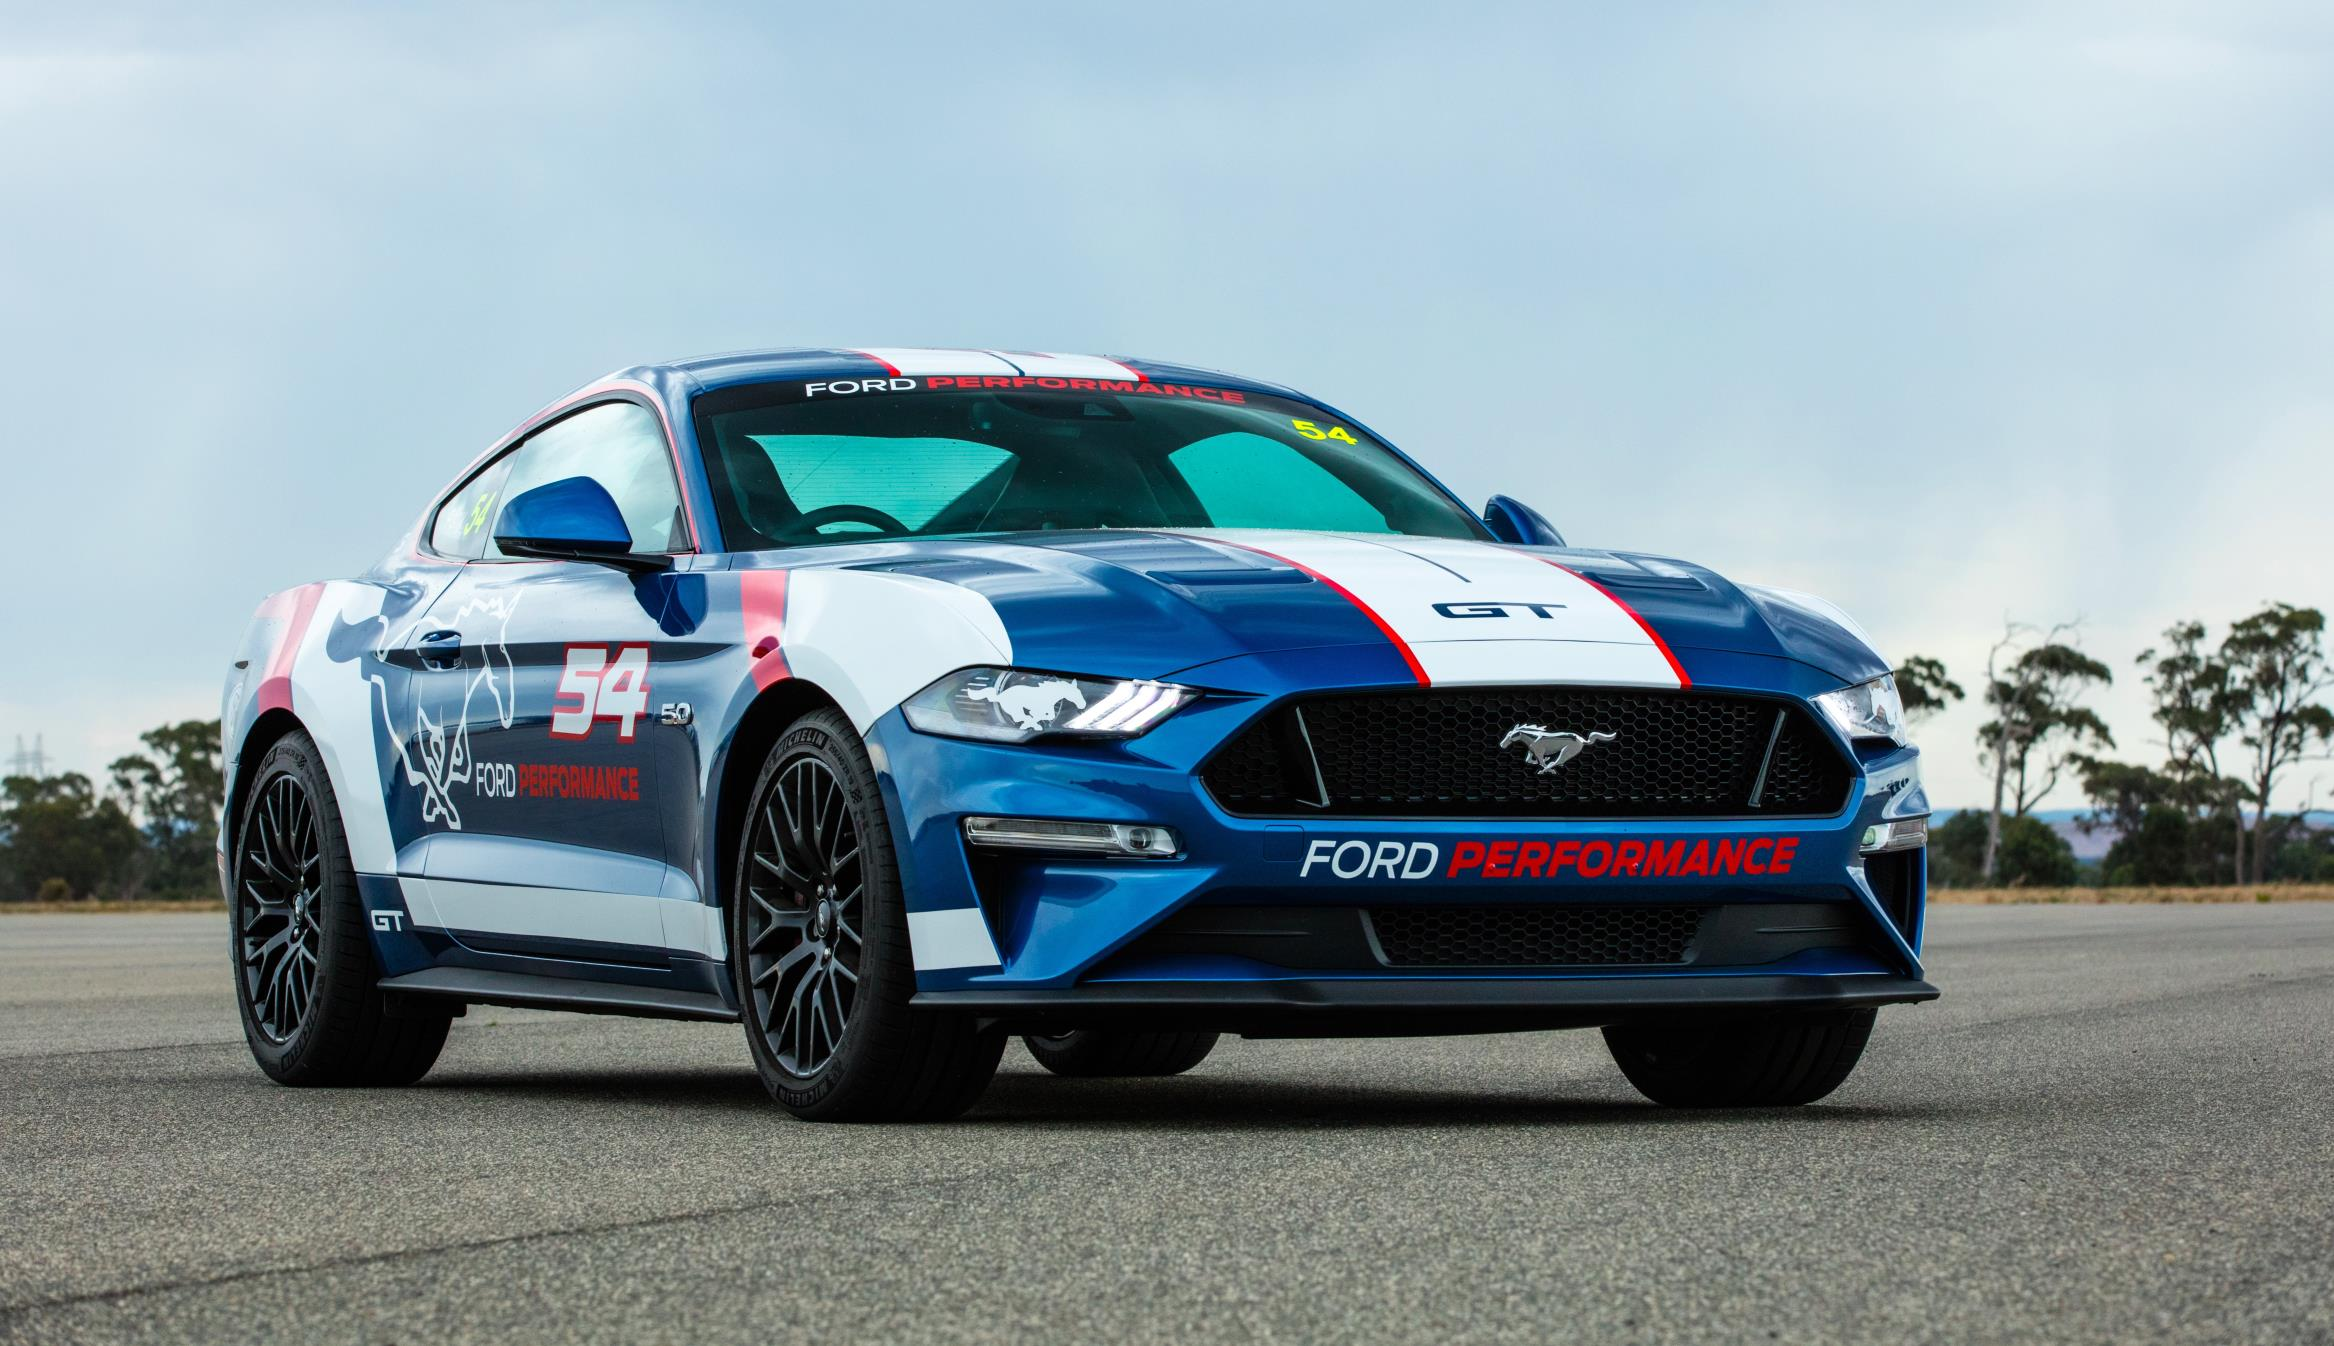 Ford Mustang to race in Supercars in 2019